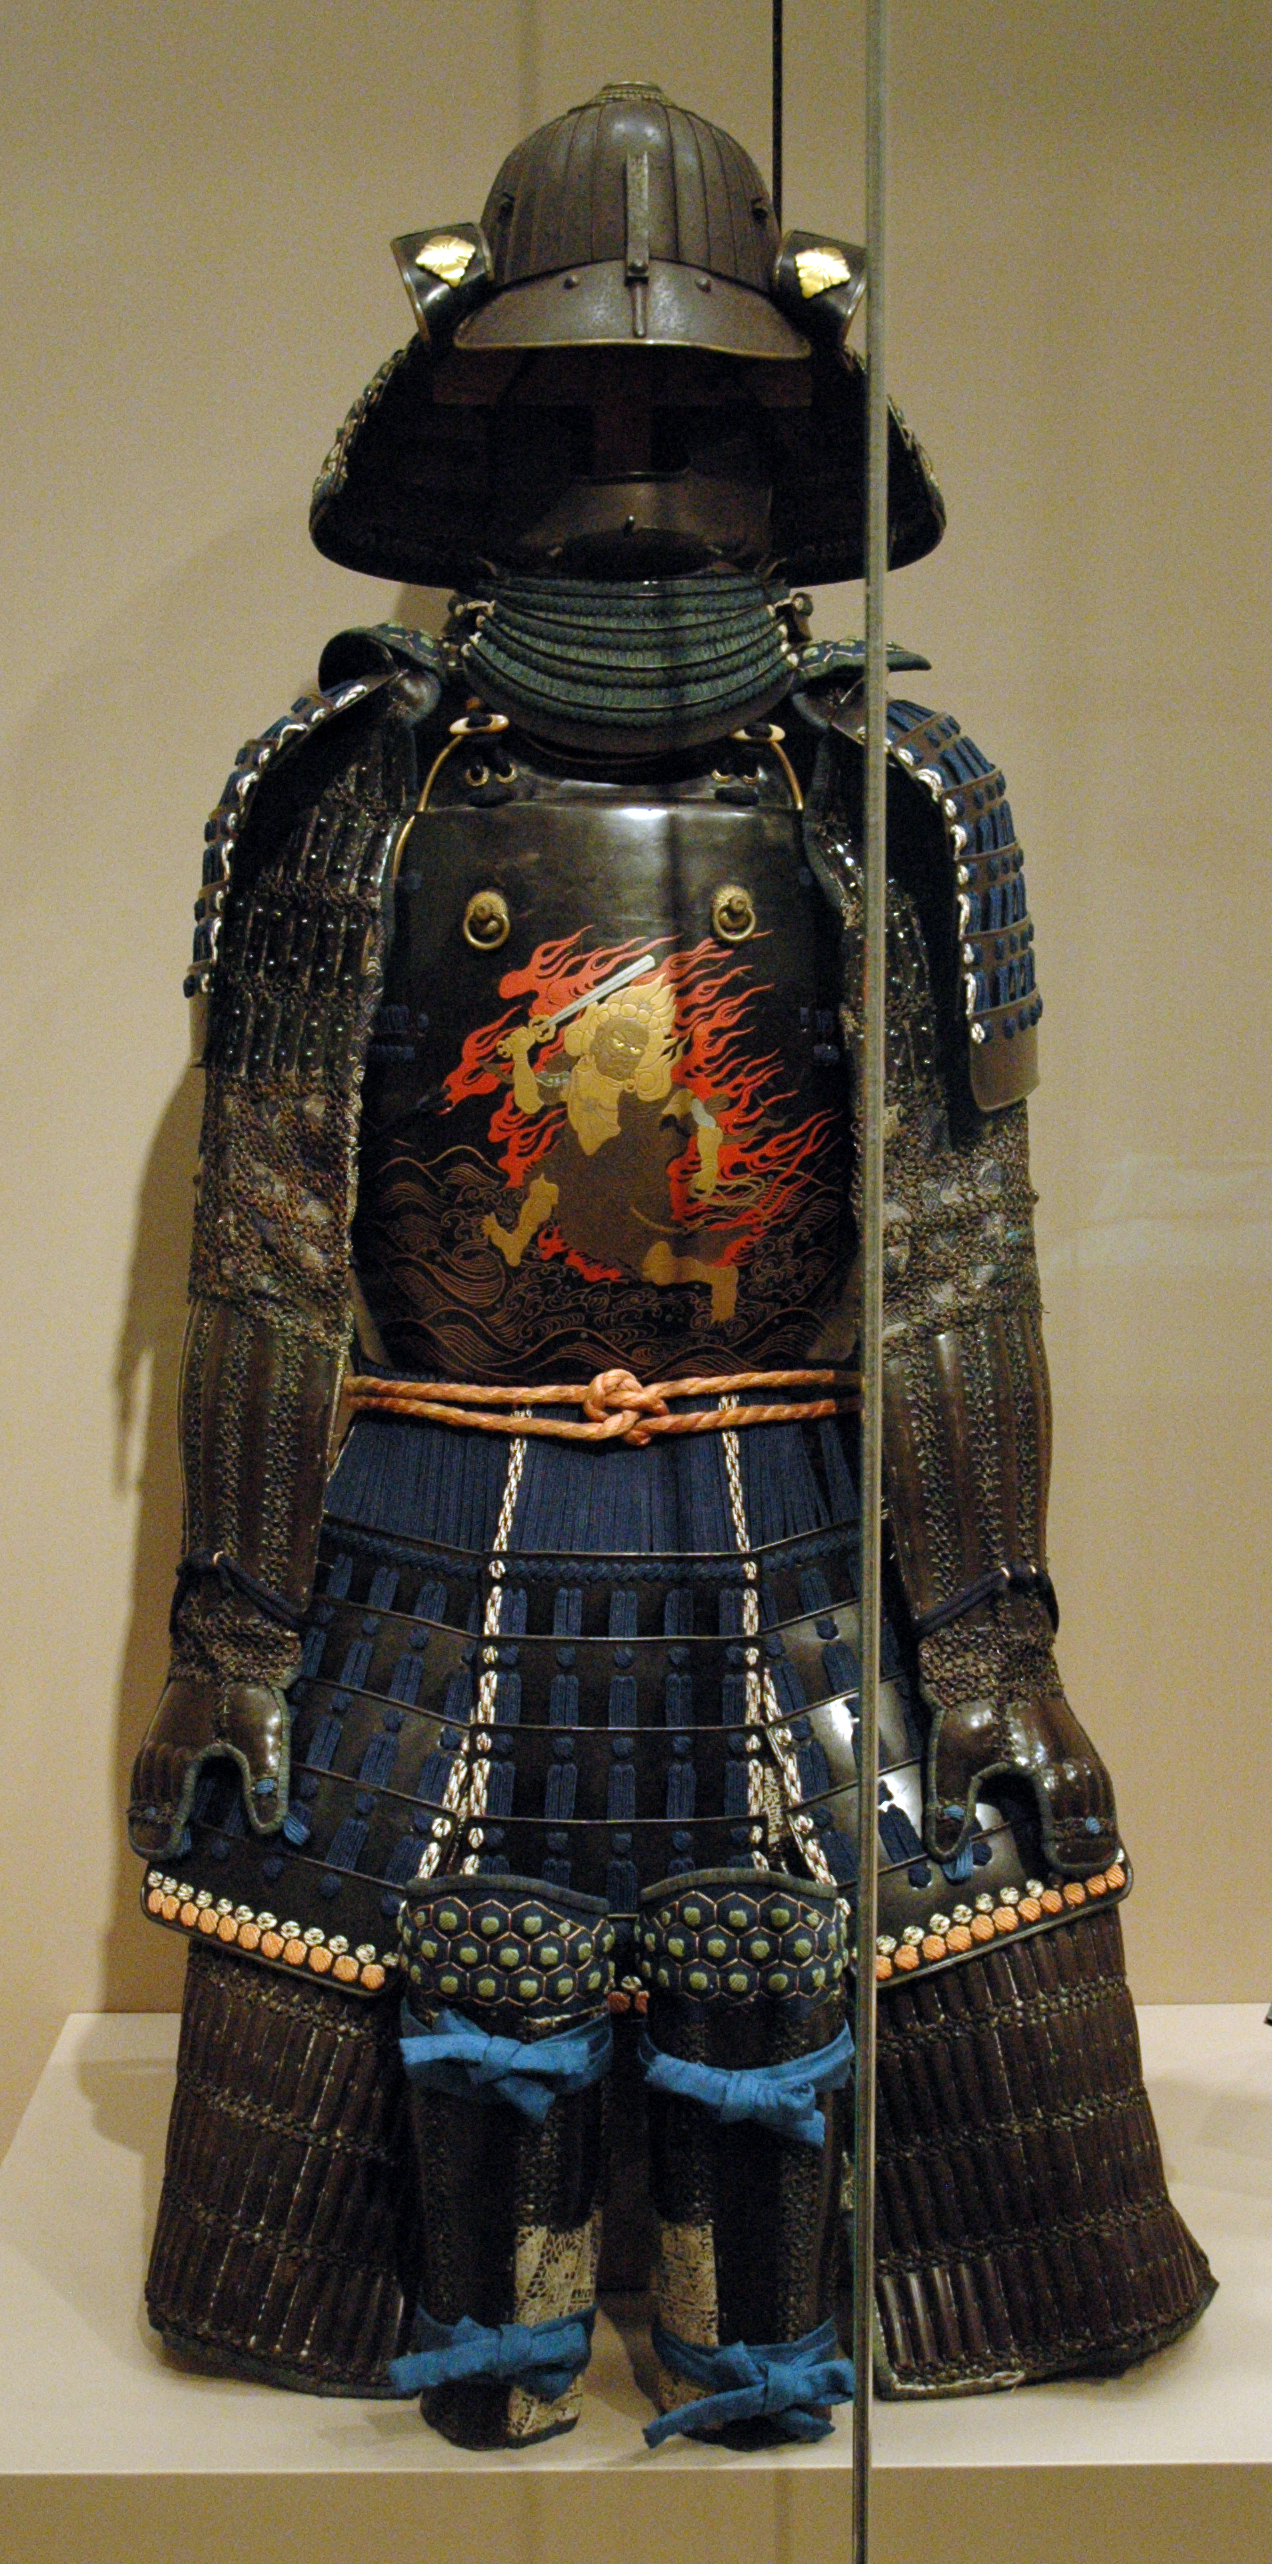 http://upload.wikimedia.org/wikipedia/commons/d/d5/Armadurasamurai.jpg